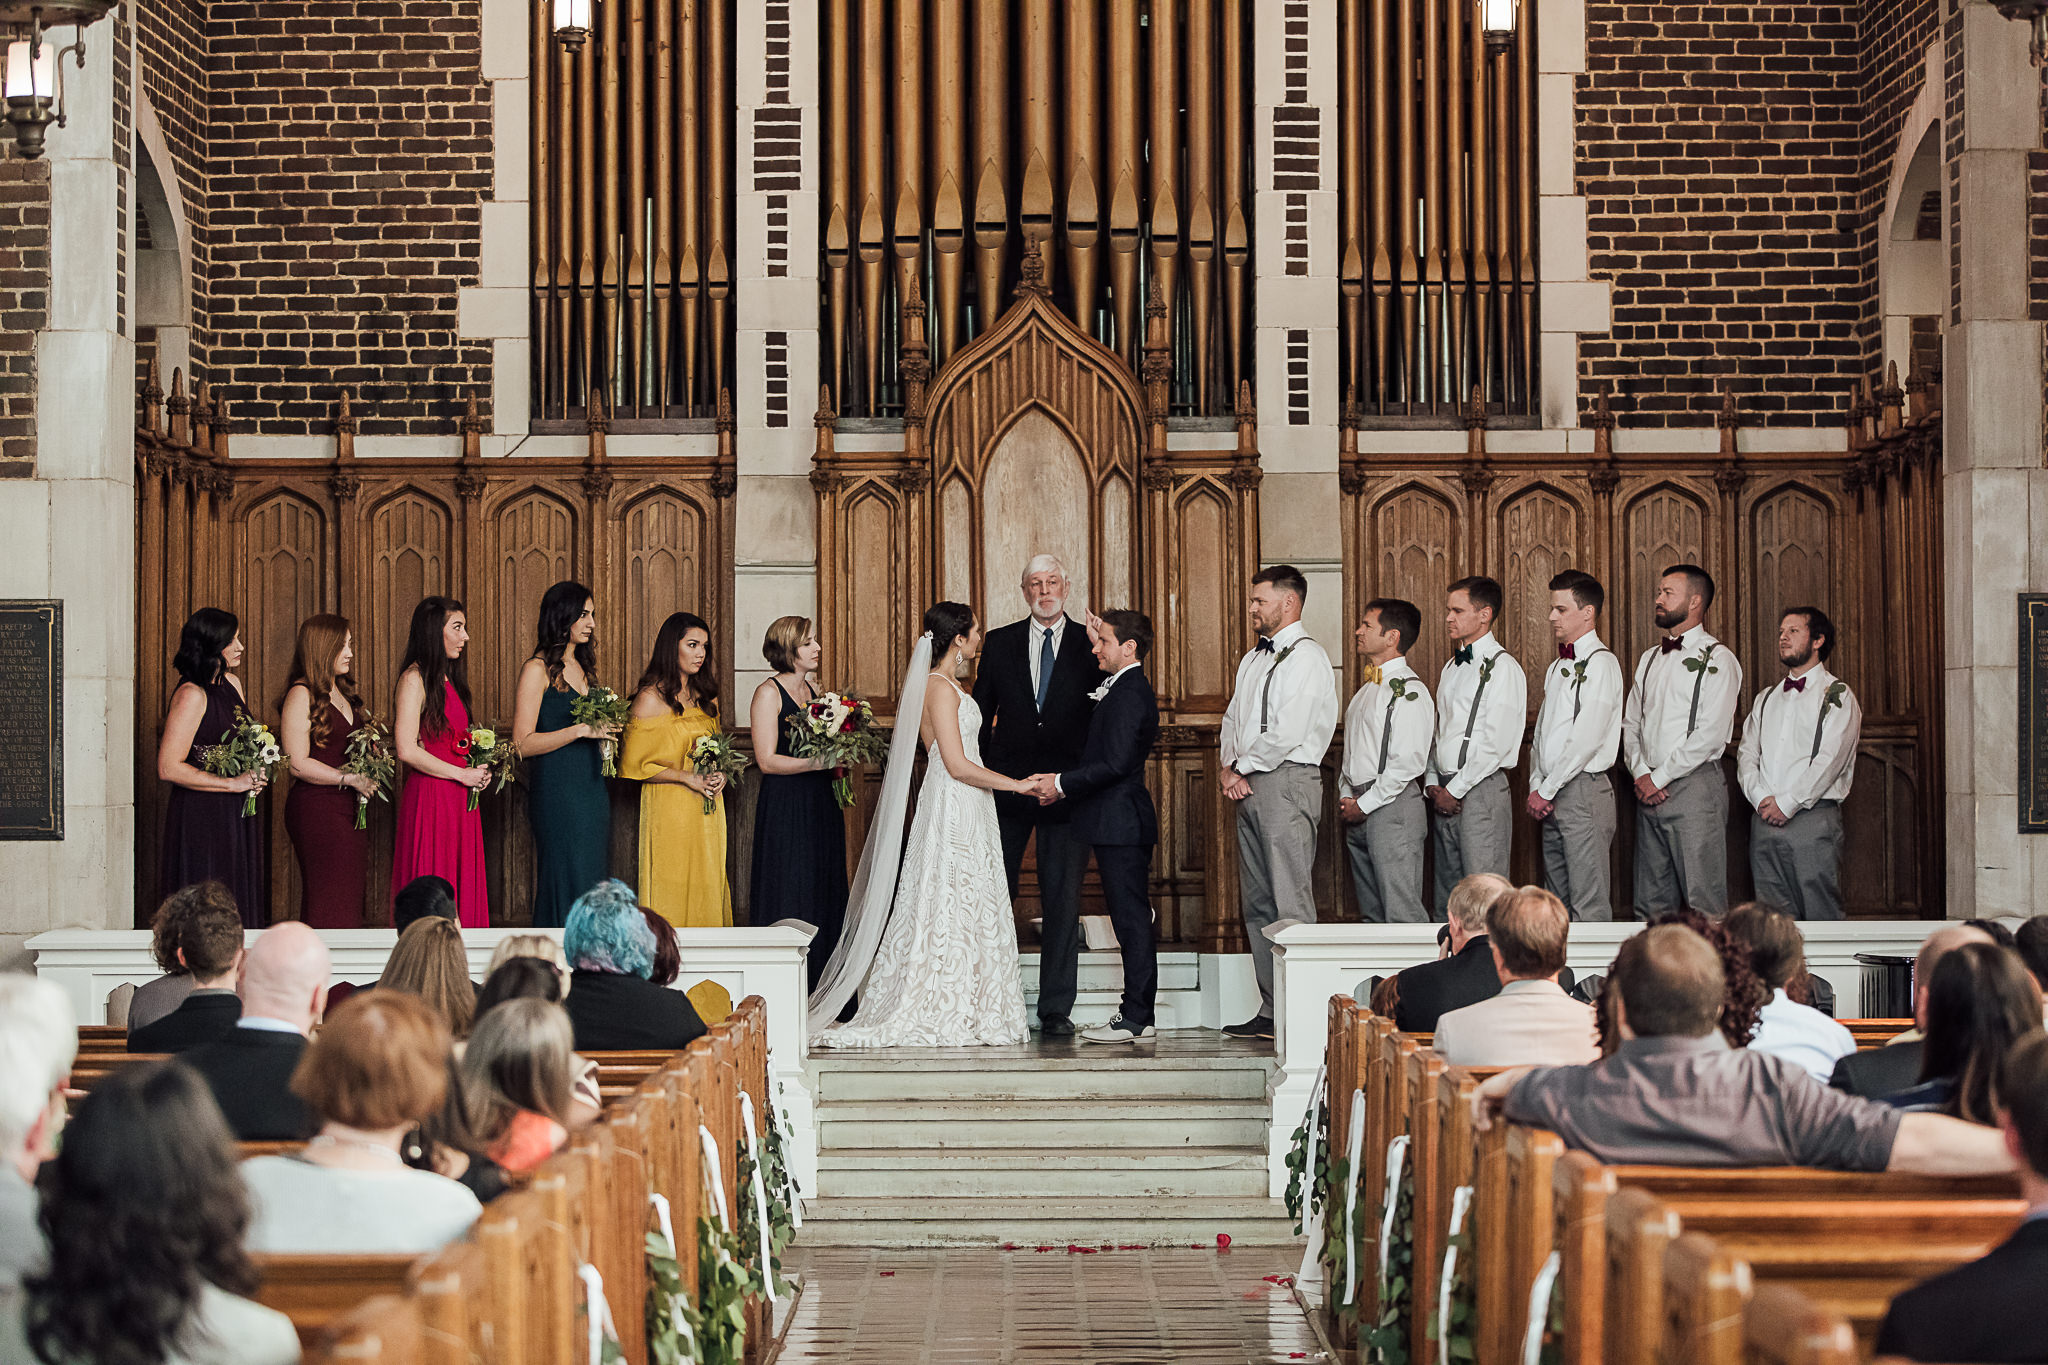 chattanooga-wedding-photographers-thewarmtharoundyou-waterhouse-pavilion-patten-chapel-wedding-sam-dusty (32 of 99).jpg